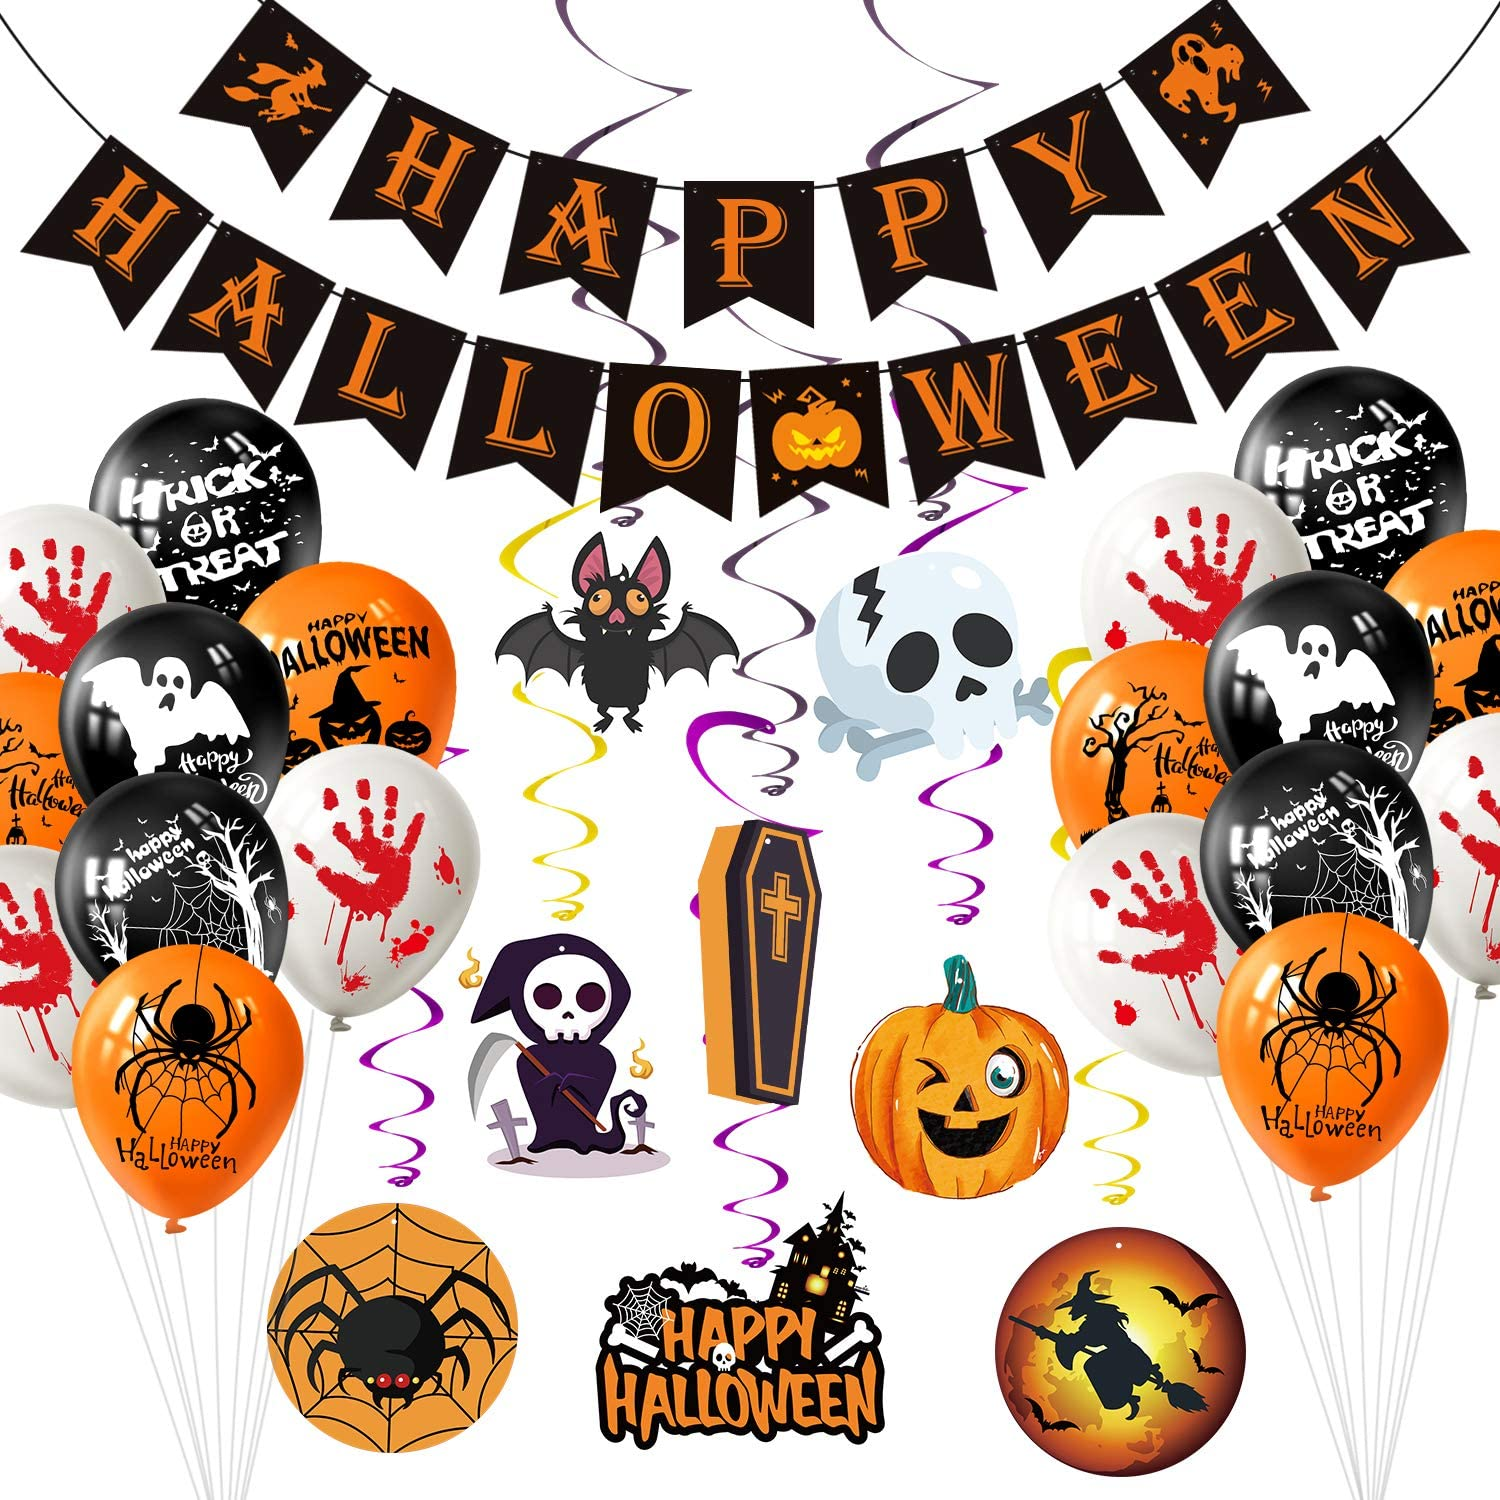 MIAHART Halloween Party Decorations Banner Kit Halloween Paper Garlands with 8 Pack Hanging Swirl and 8 Pack Halloween Pumpkin Wizards Ghost Balloons for Halloween Party Bar Home Decor Supplies Indoor Outdoor